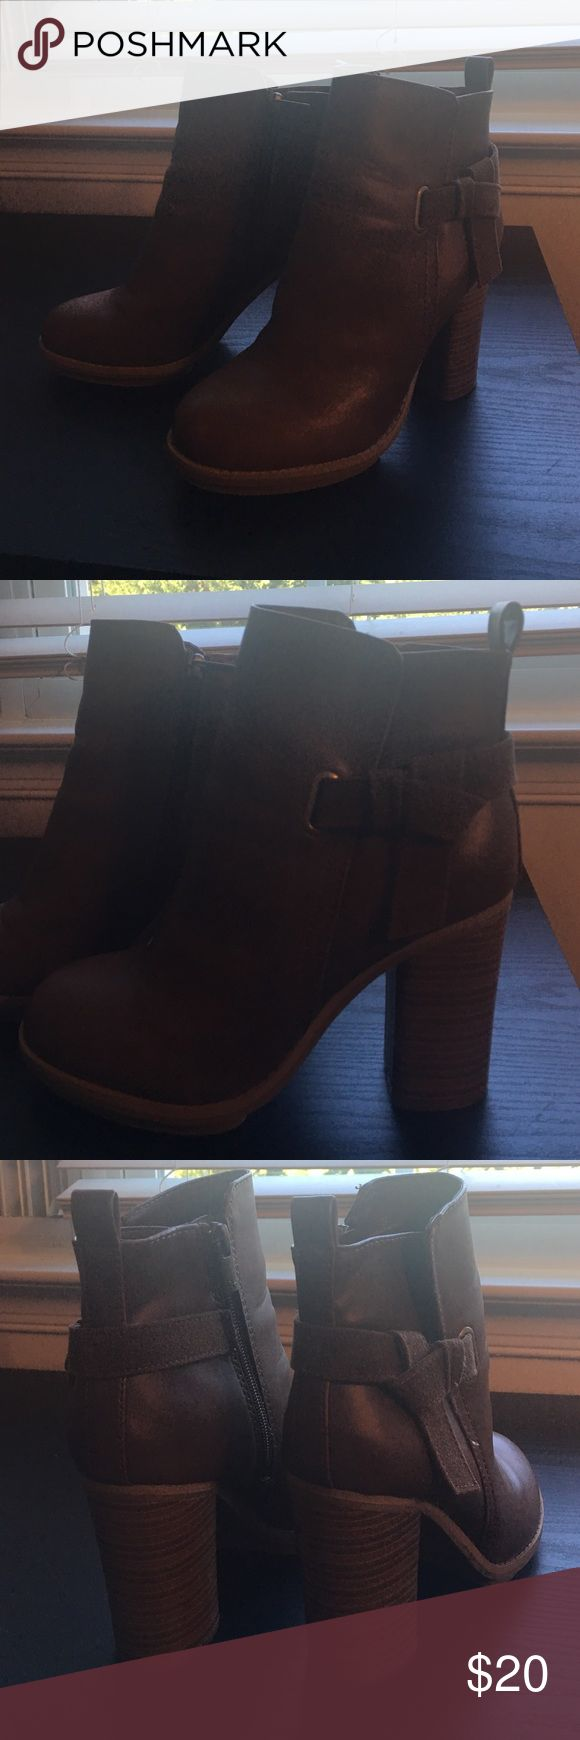 Boots Target boots, never worn Shoes Heeled Boots